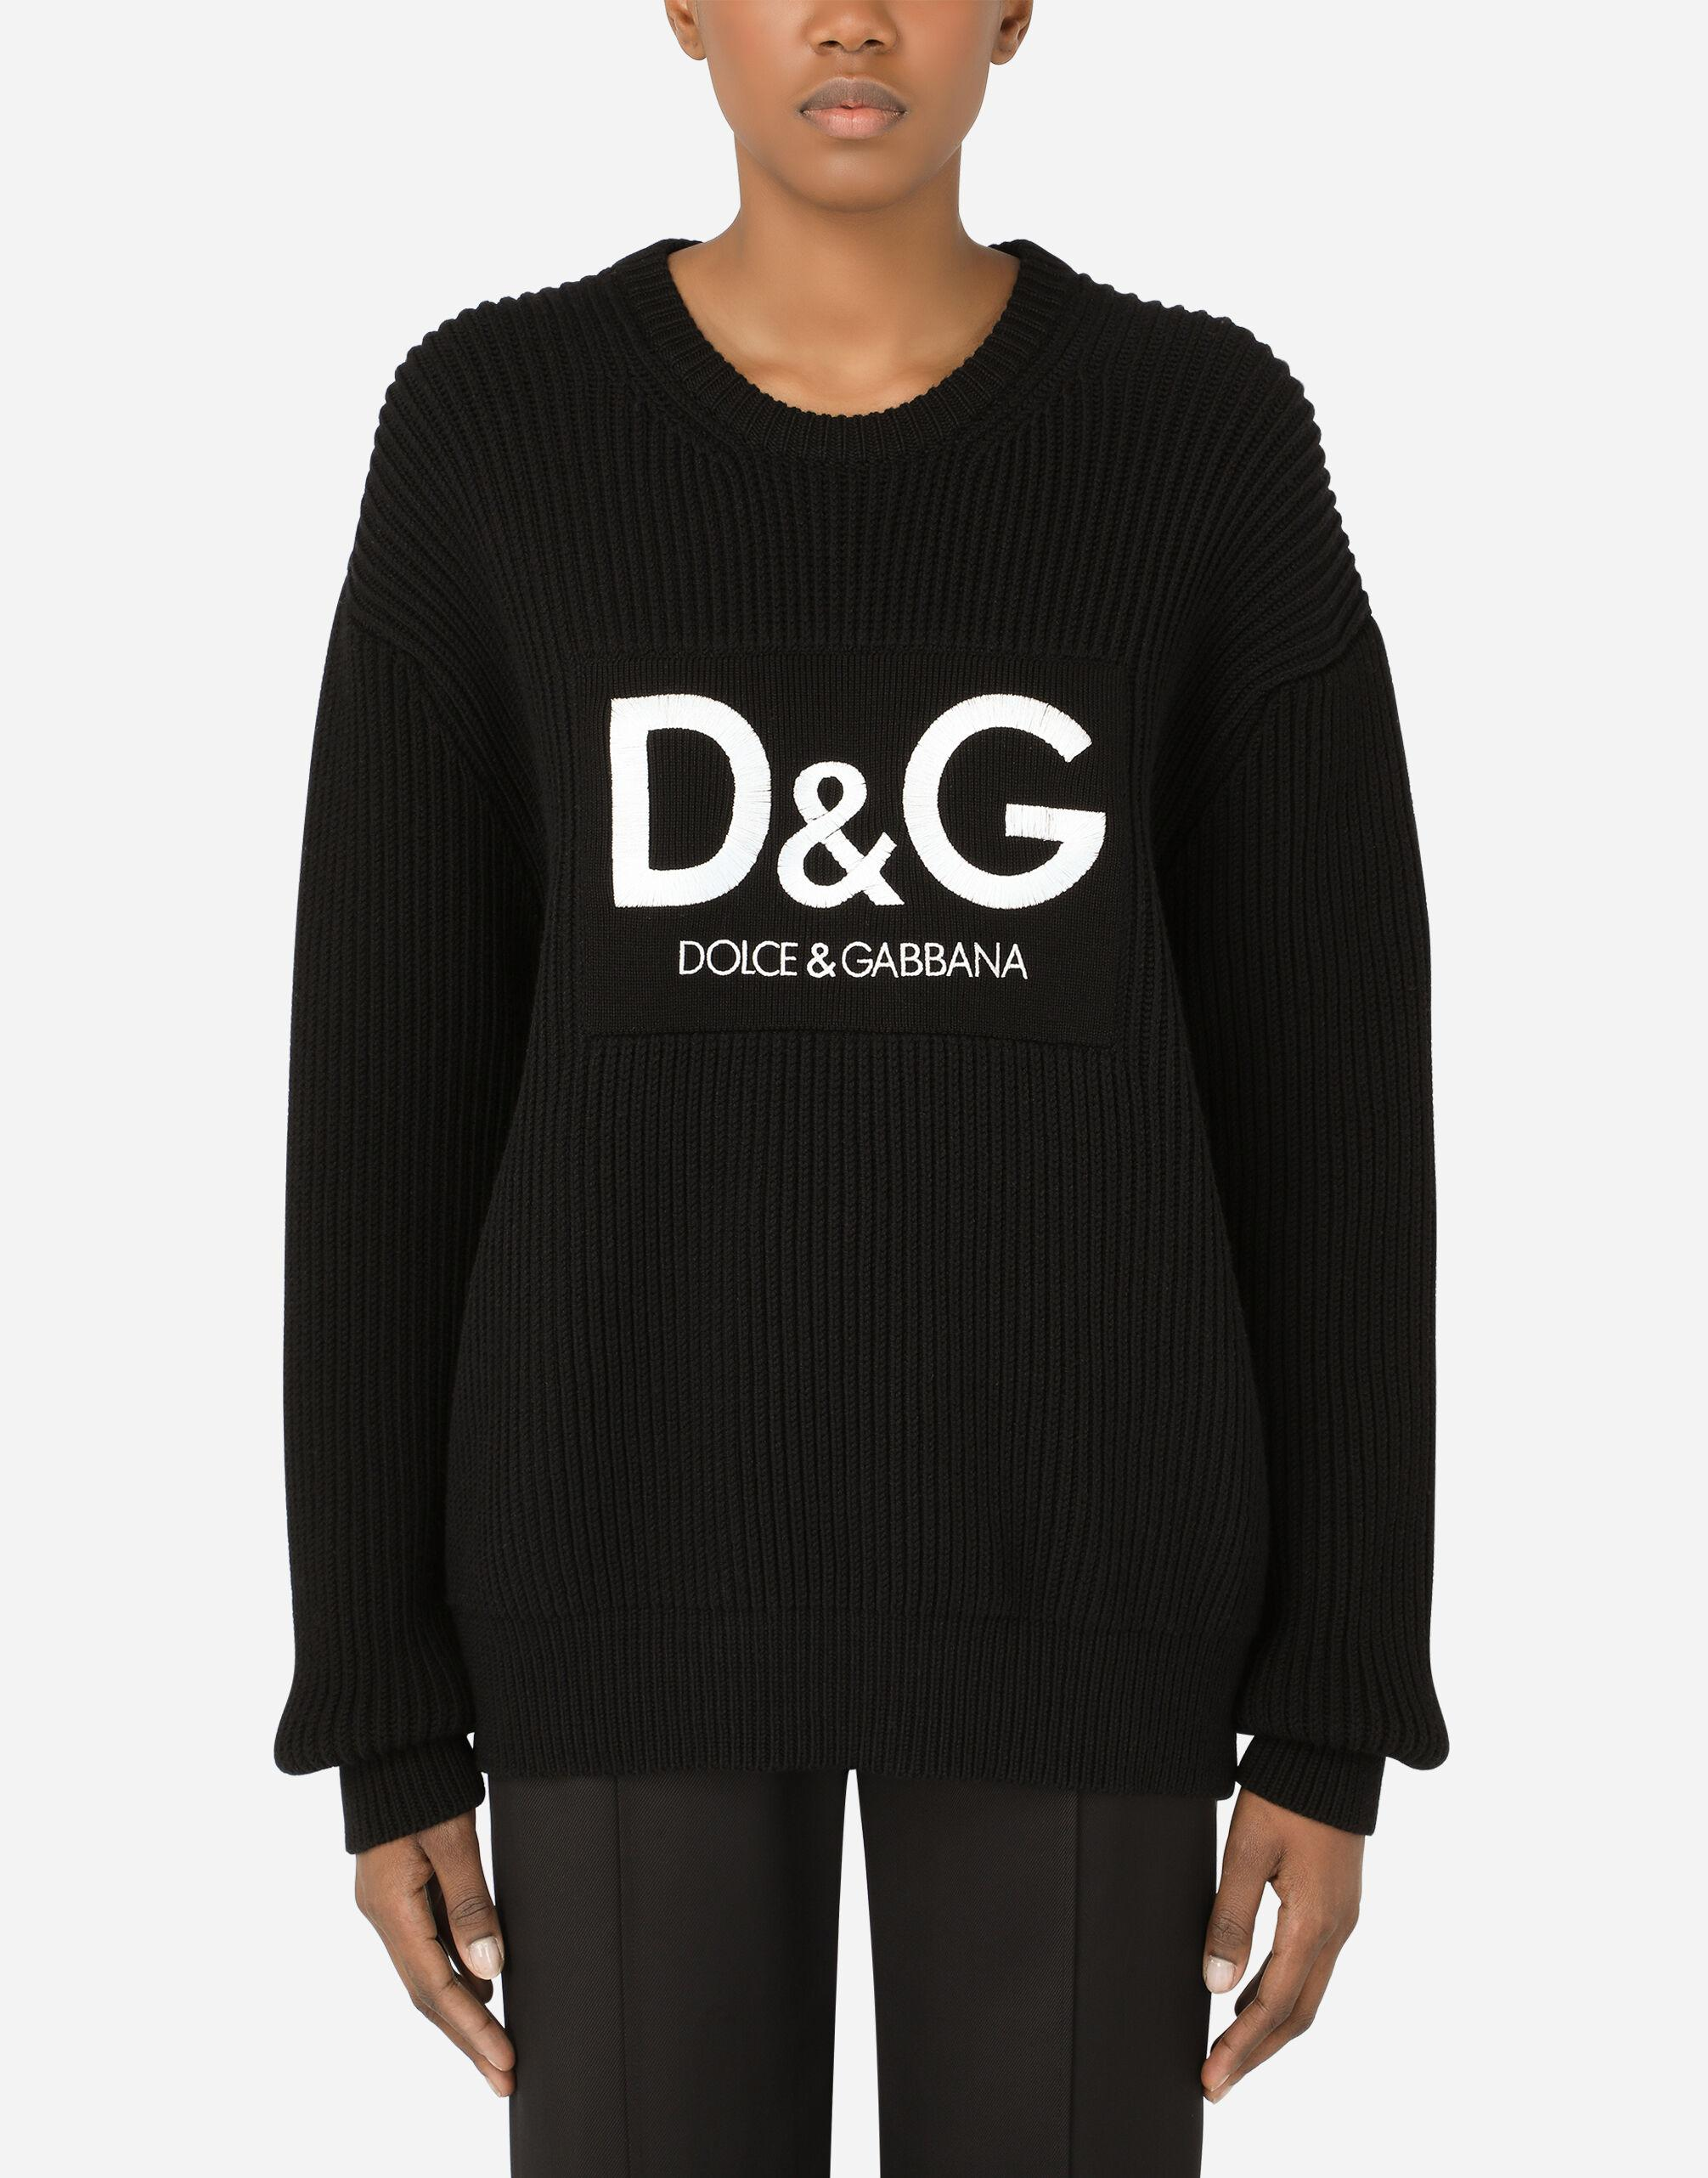 Wool fisherman's rib sweater with D&G embroidery